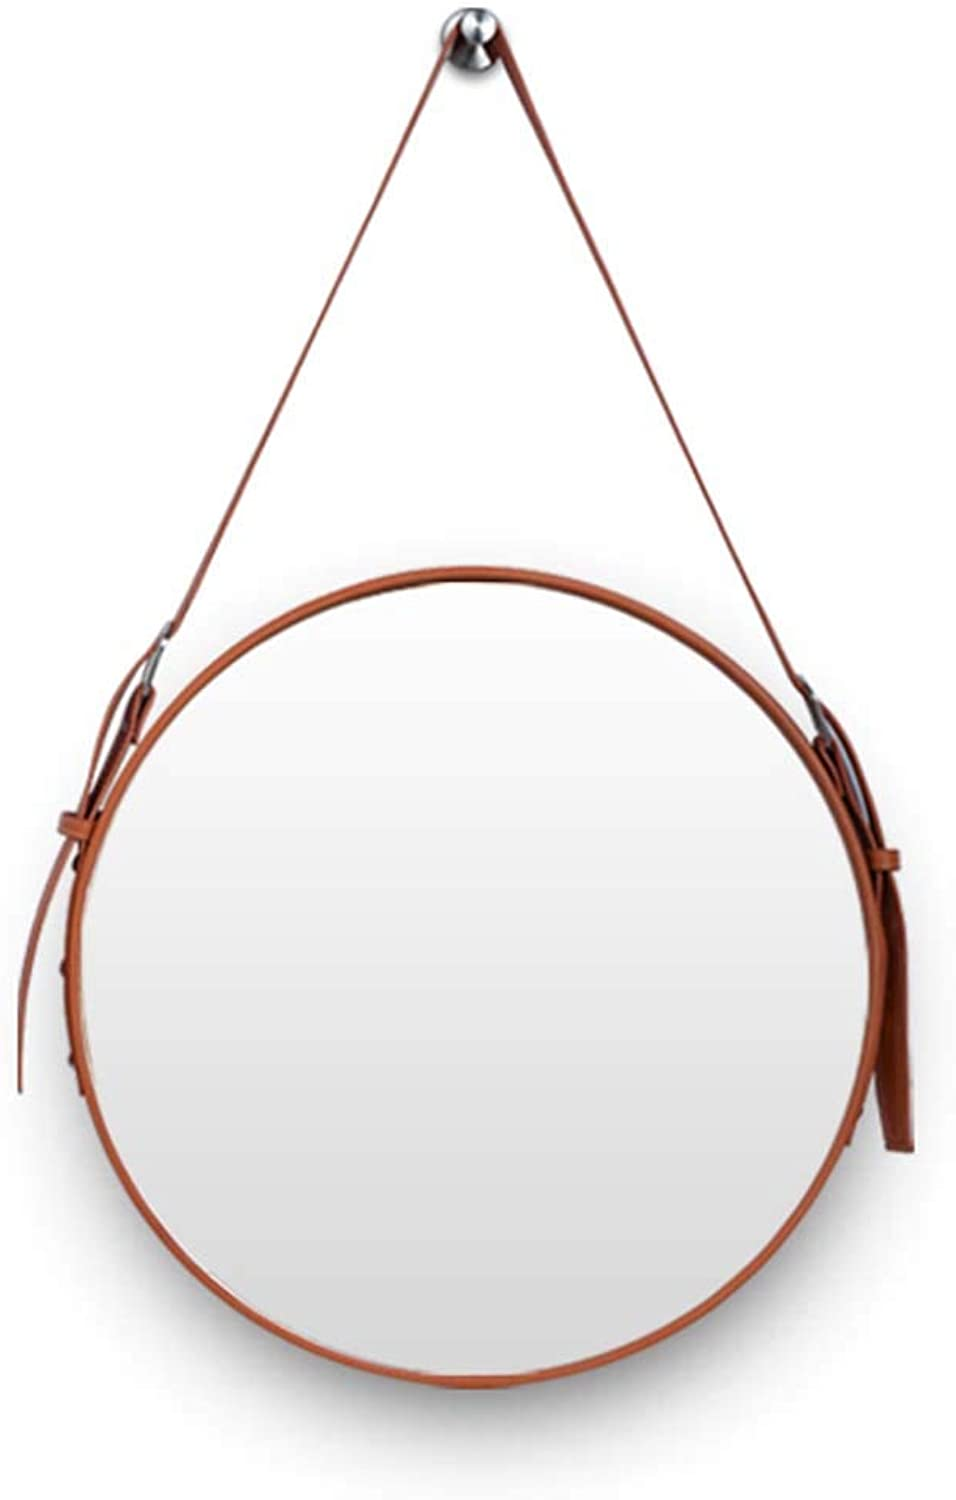 Decorative Mirrors Leather Round Wall Mirror Makeup Mirror with Hanging Strap Silver Hardware Hook(orange Yellow,Diameter 20-28Inch)